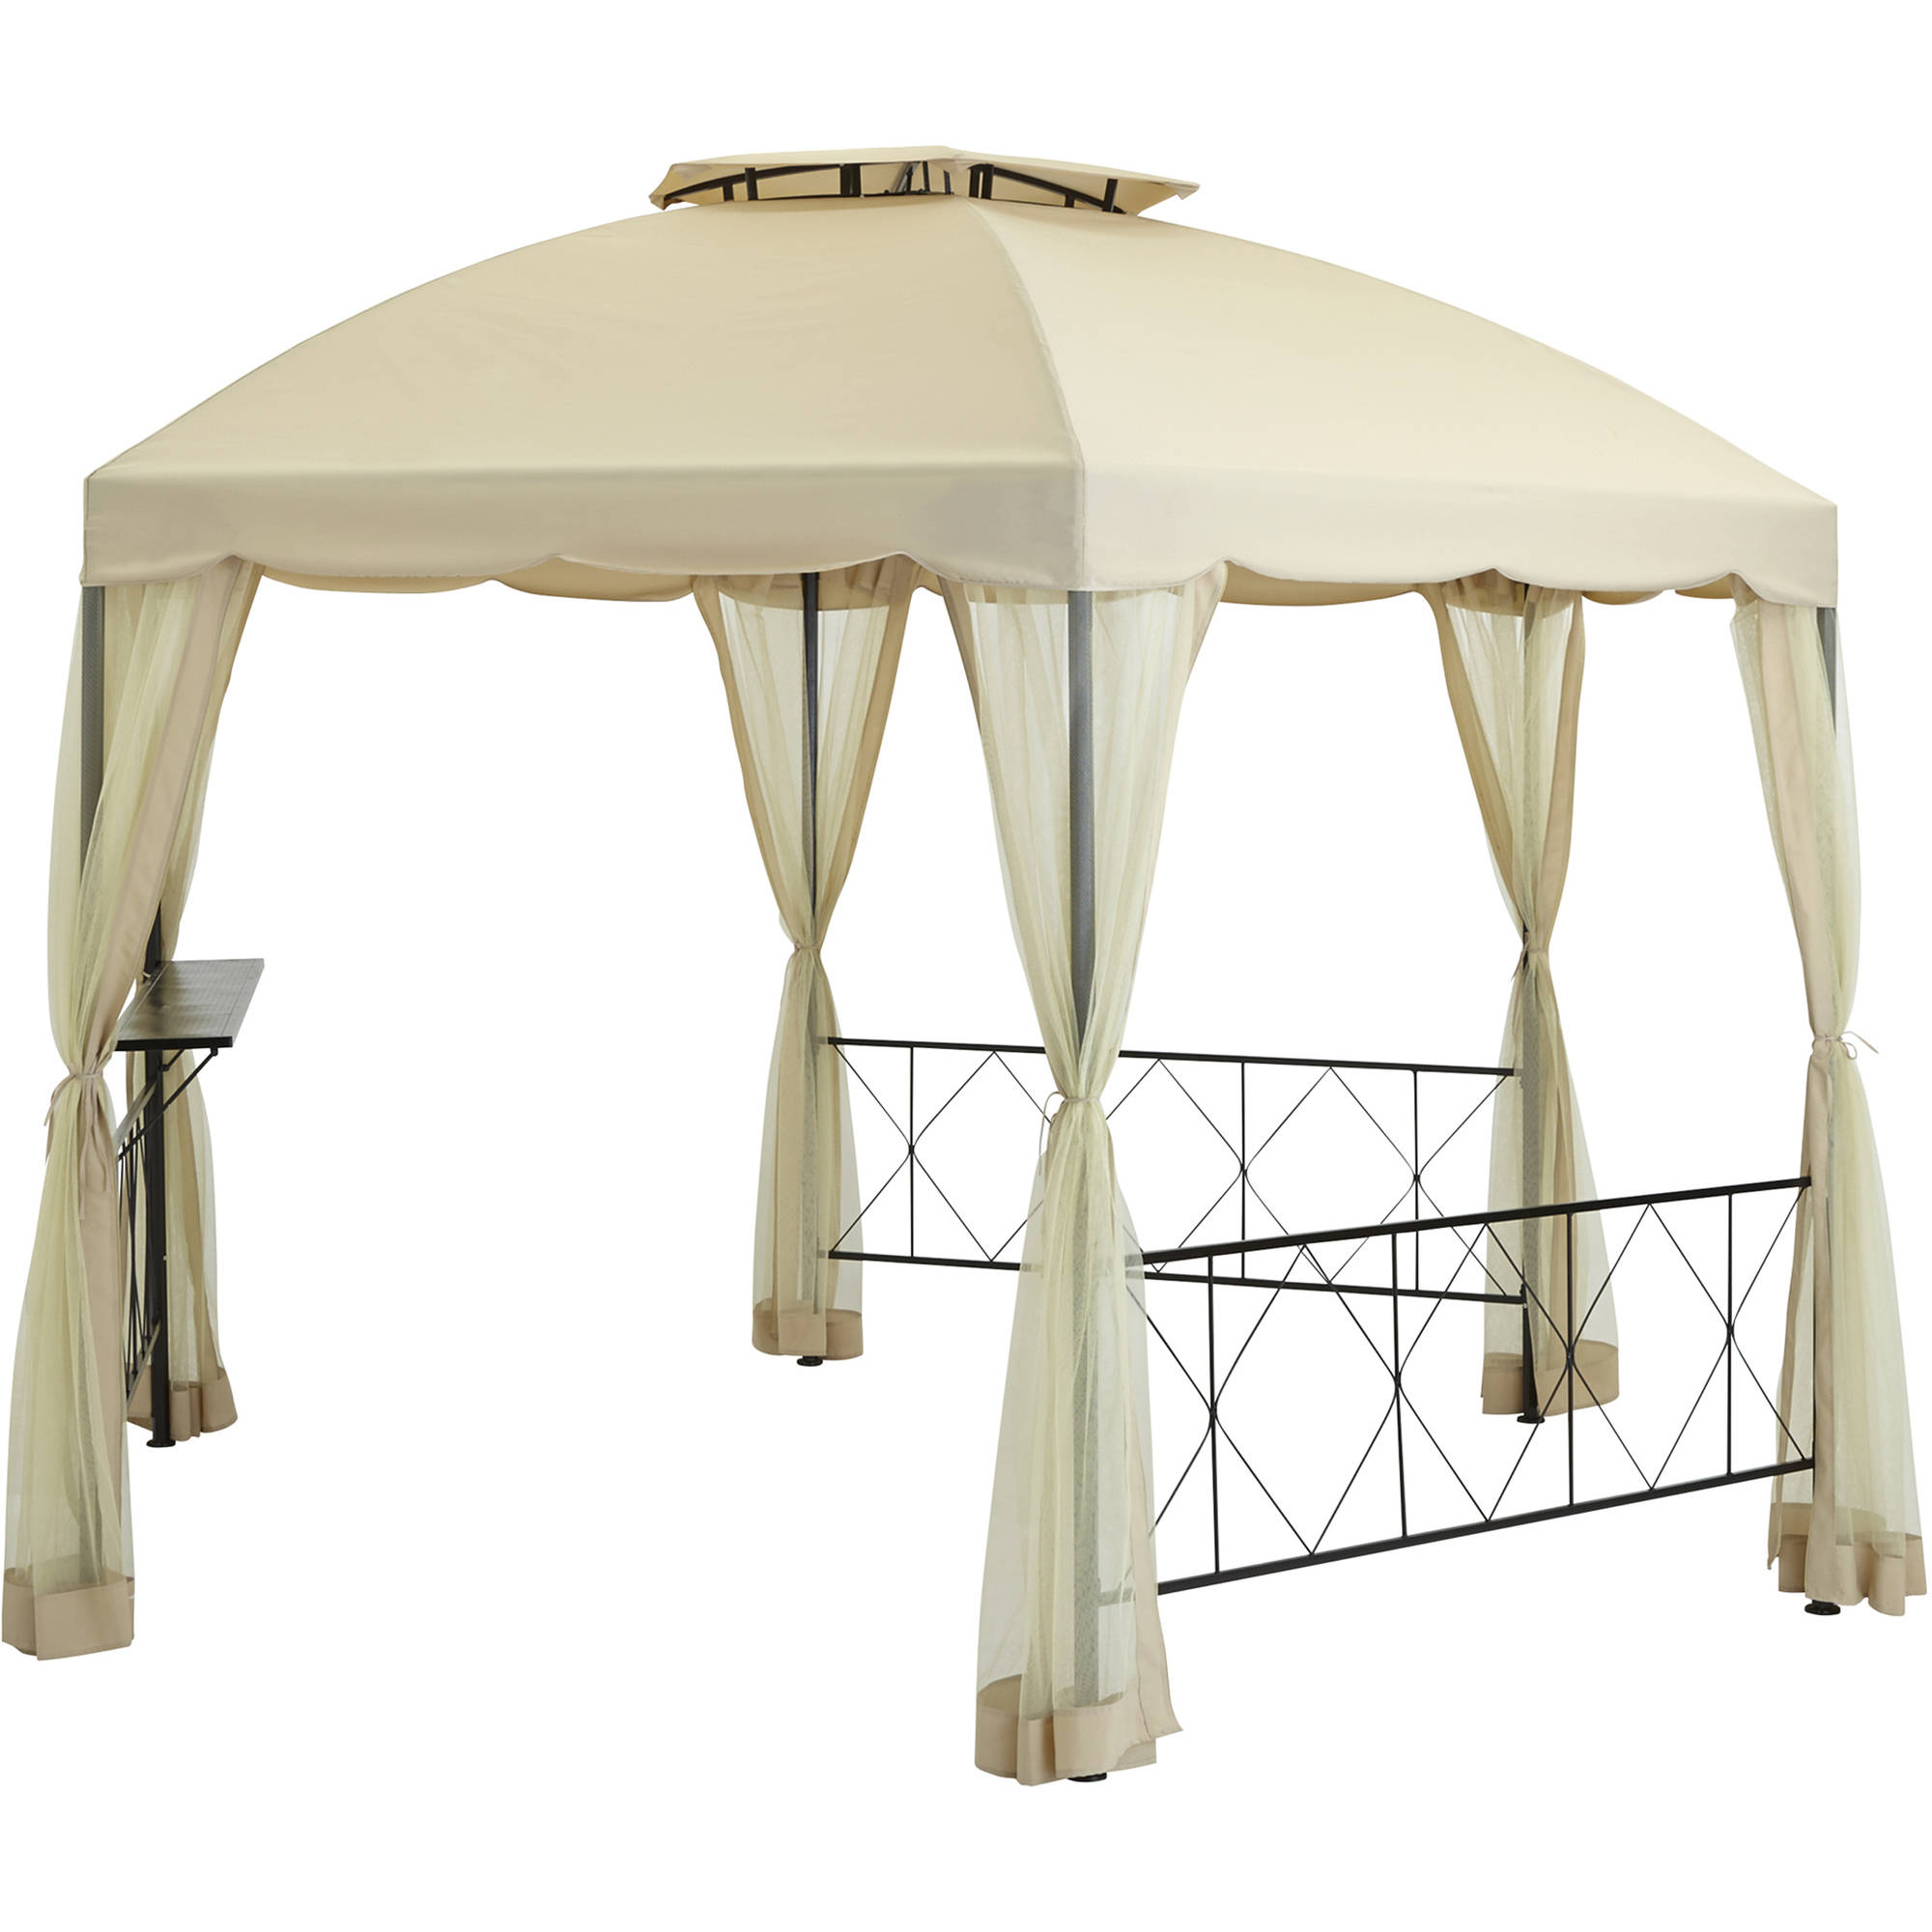 Mainstays Hexagonal Gazebo, 12-foot